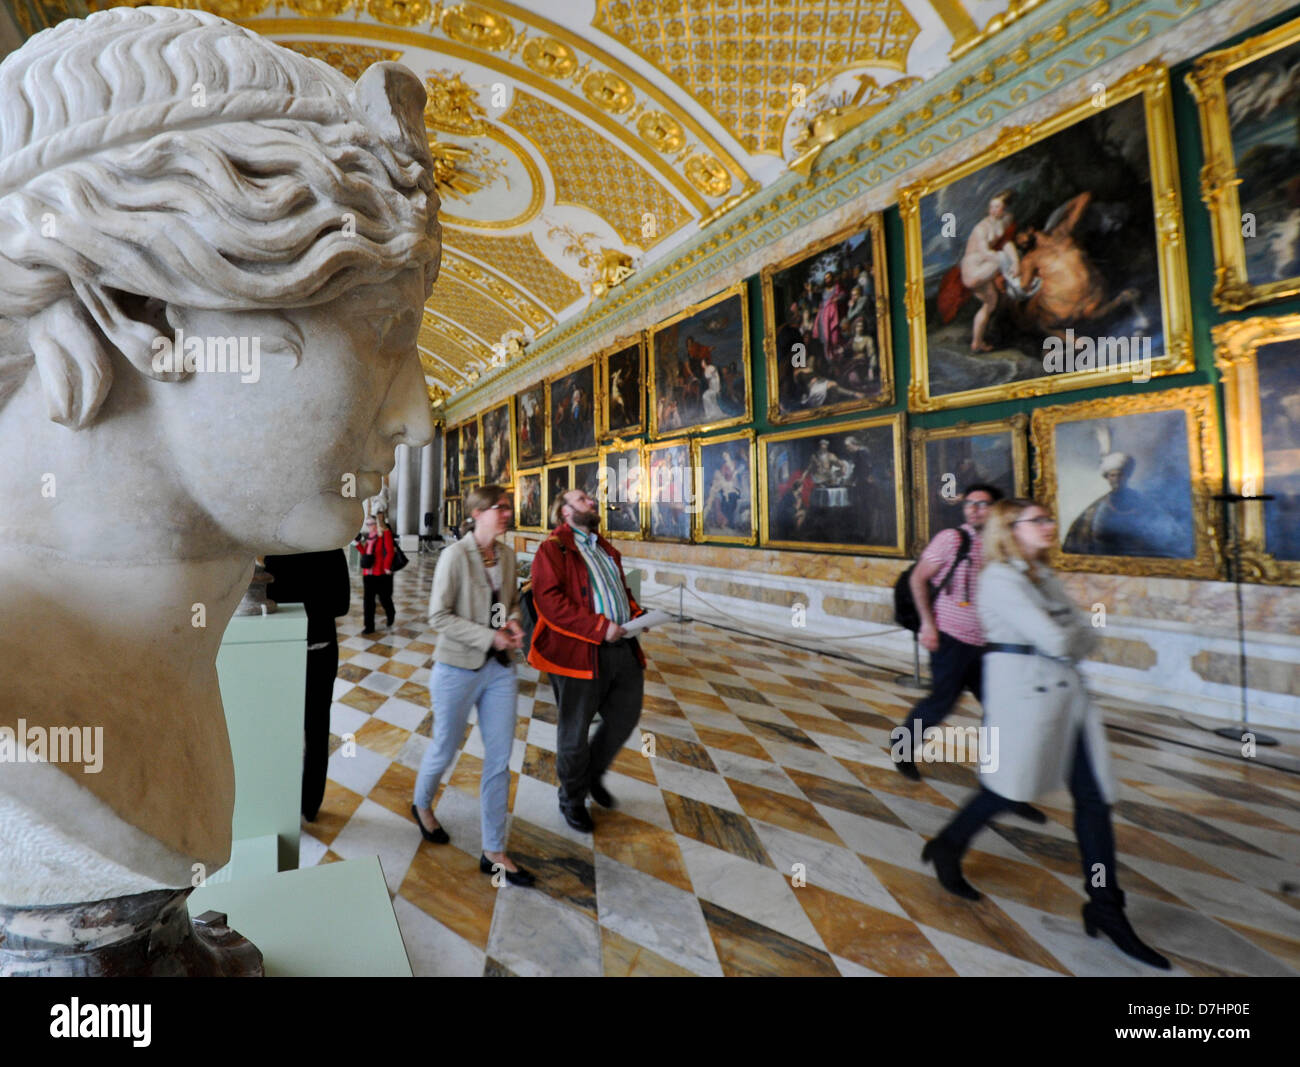 The sculpture 'A muse' is part of the exhibition 'The most beautiful gallery' in the picture gallery - Stock Image